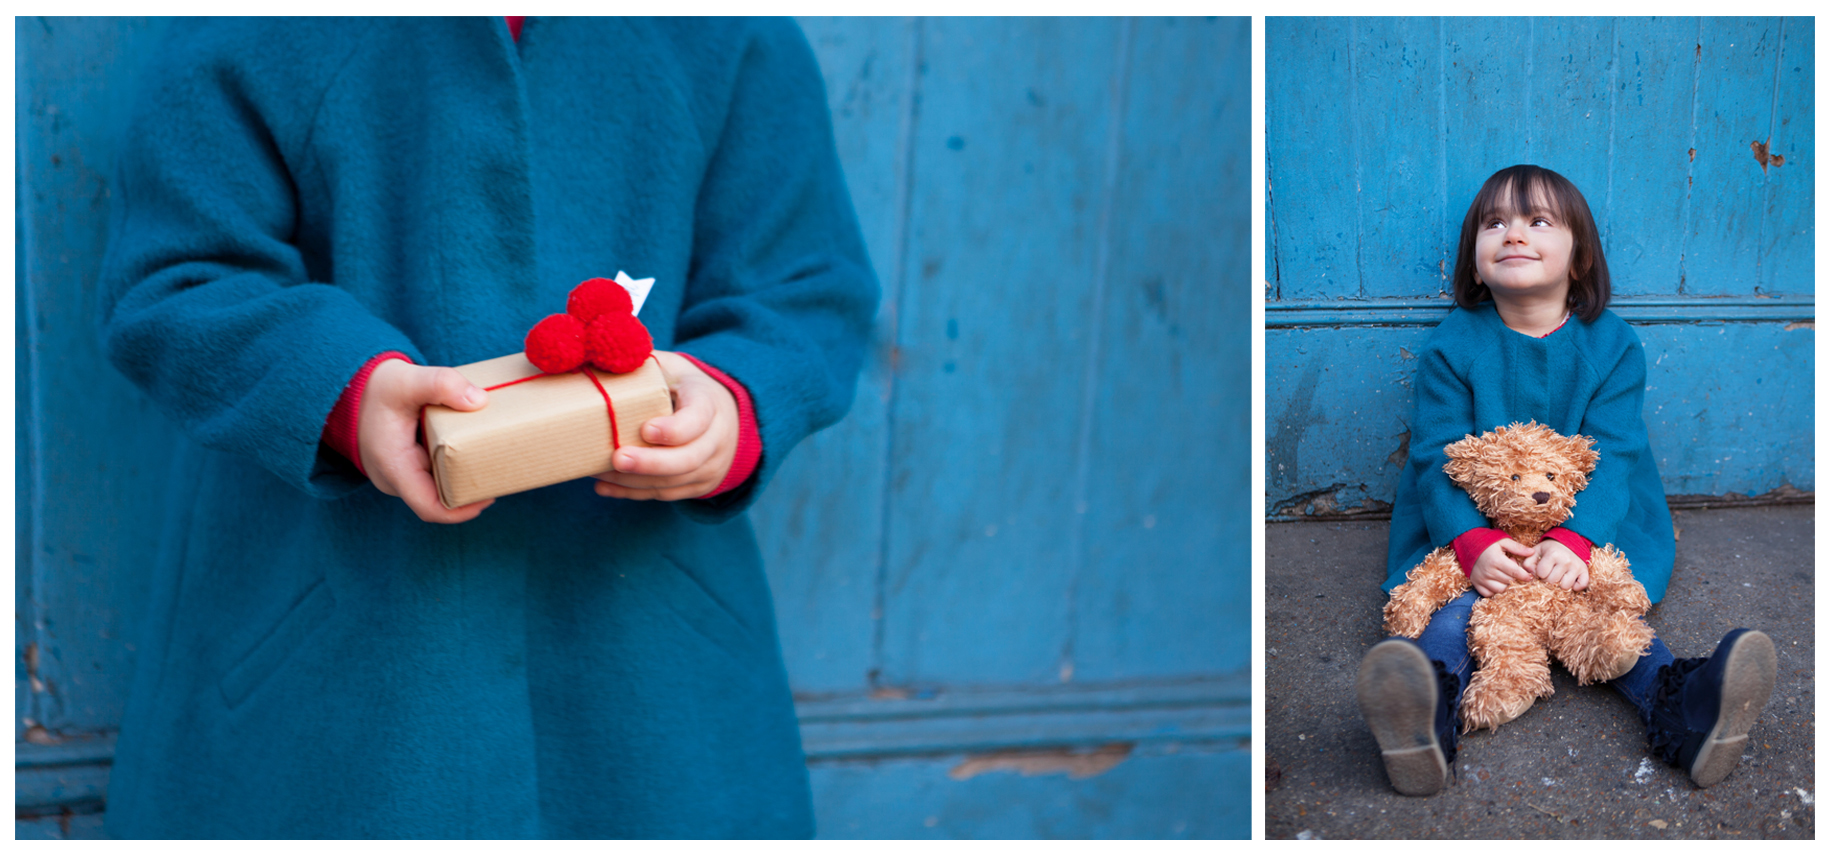 Clare J Sheridan Photography - Young girl in blue coat with teddy bear and wrapped gift